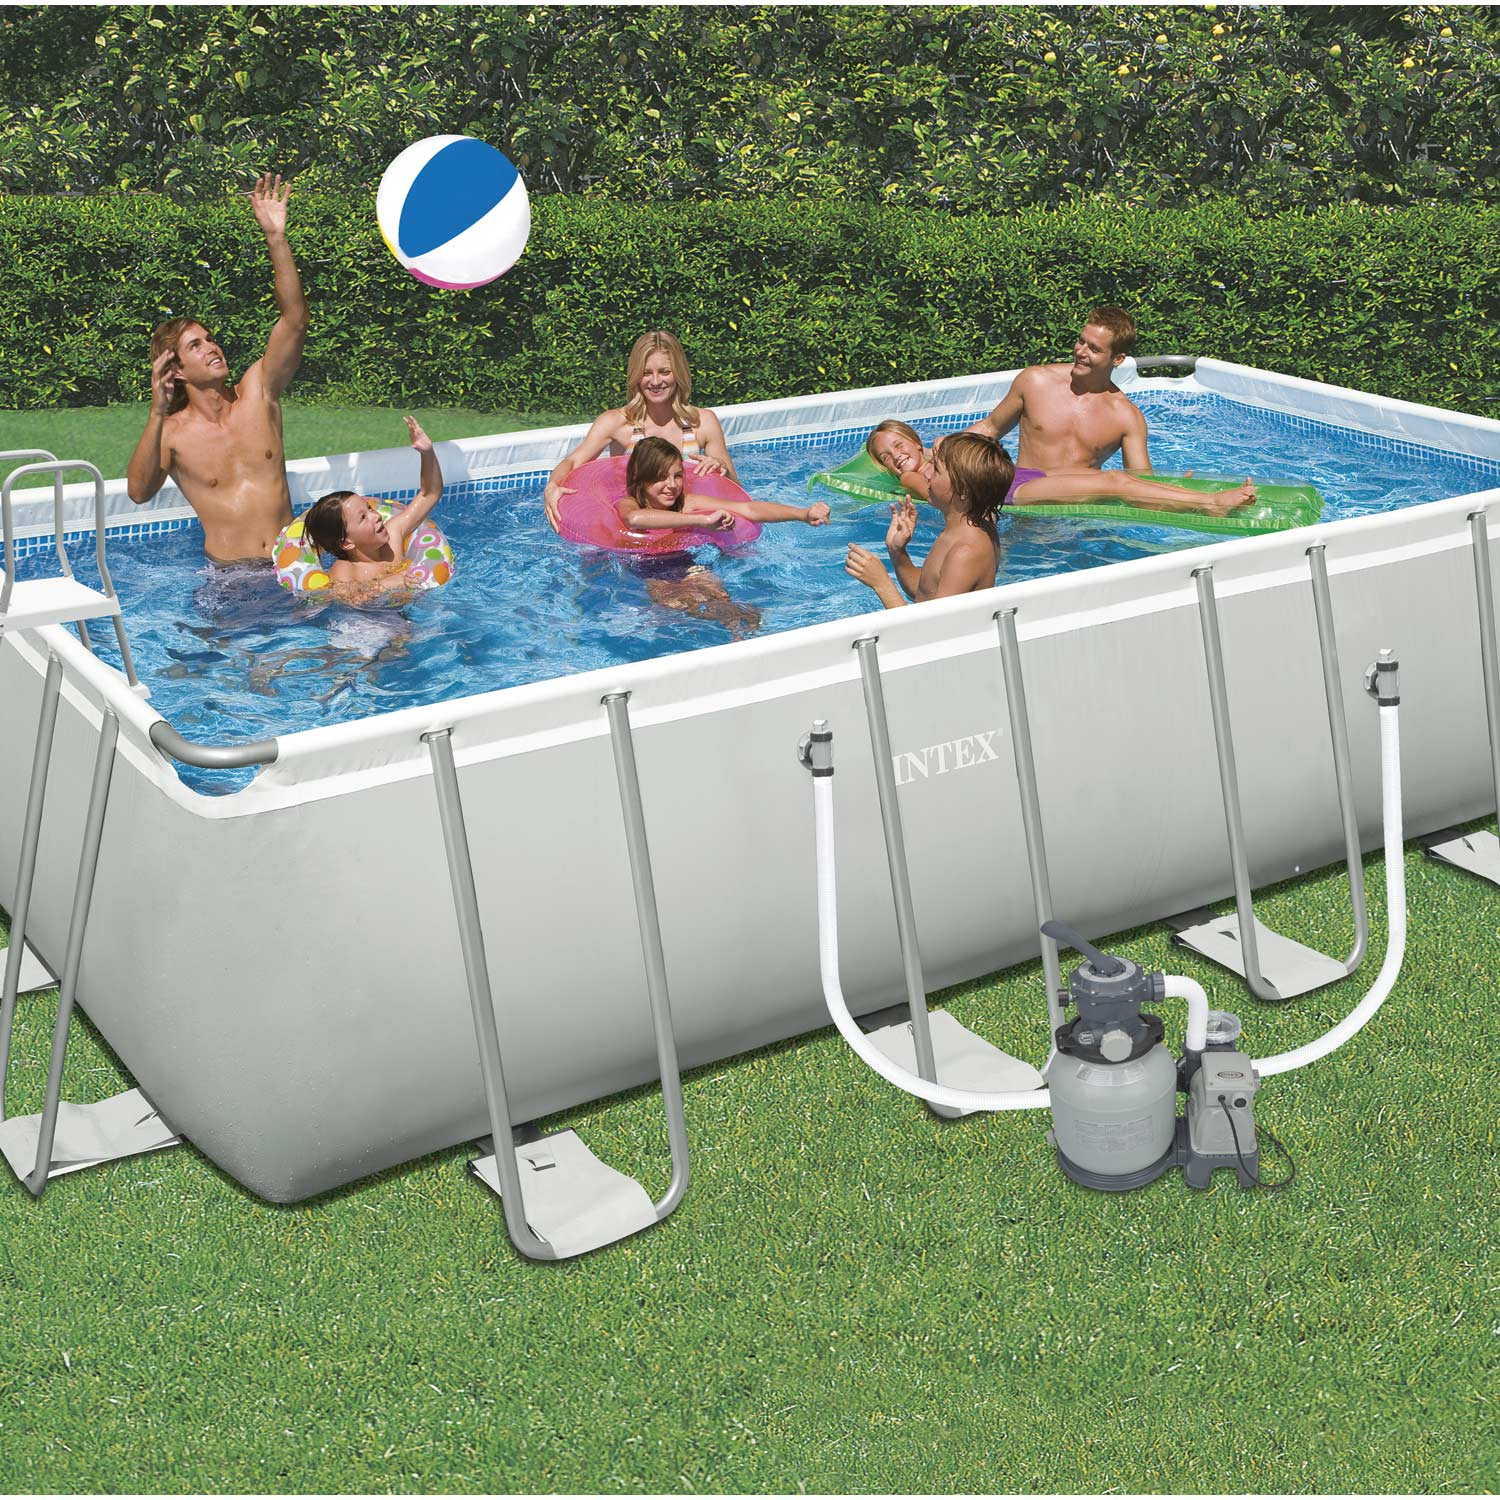 Piscine hors sol autoportante tubulaire ultra silver intex for Piscine hors sol rigide